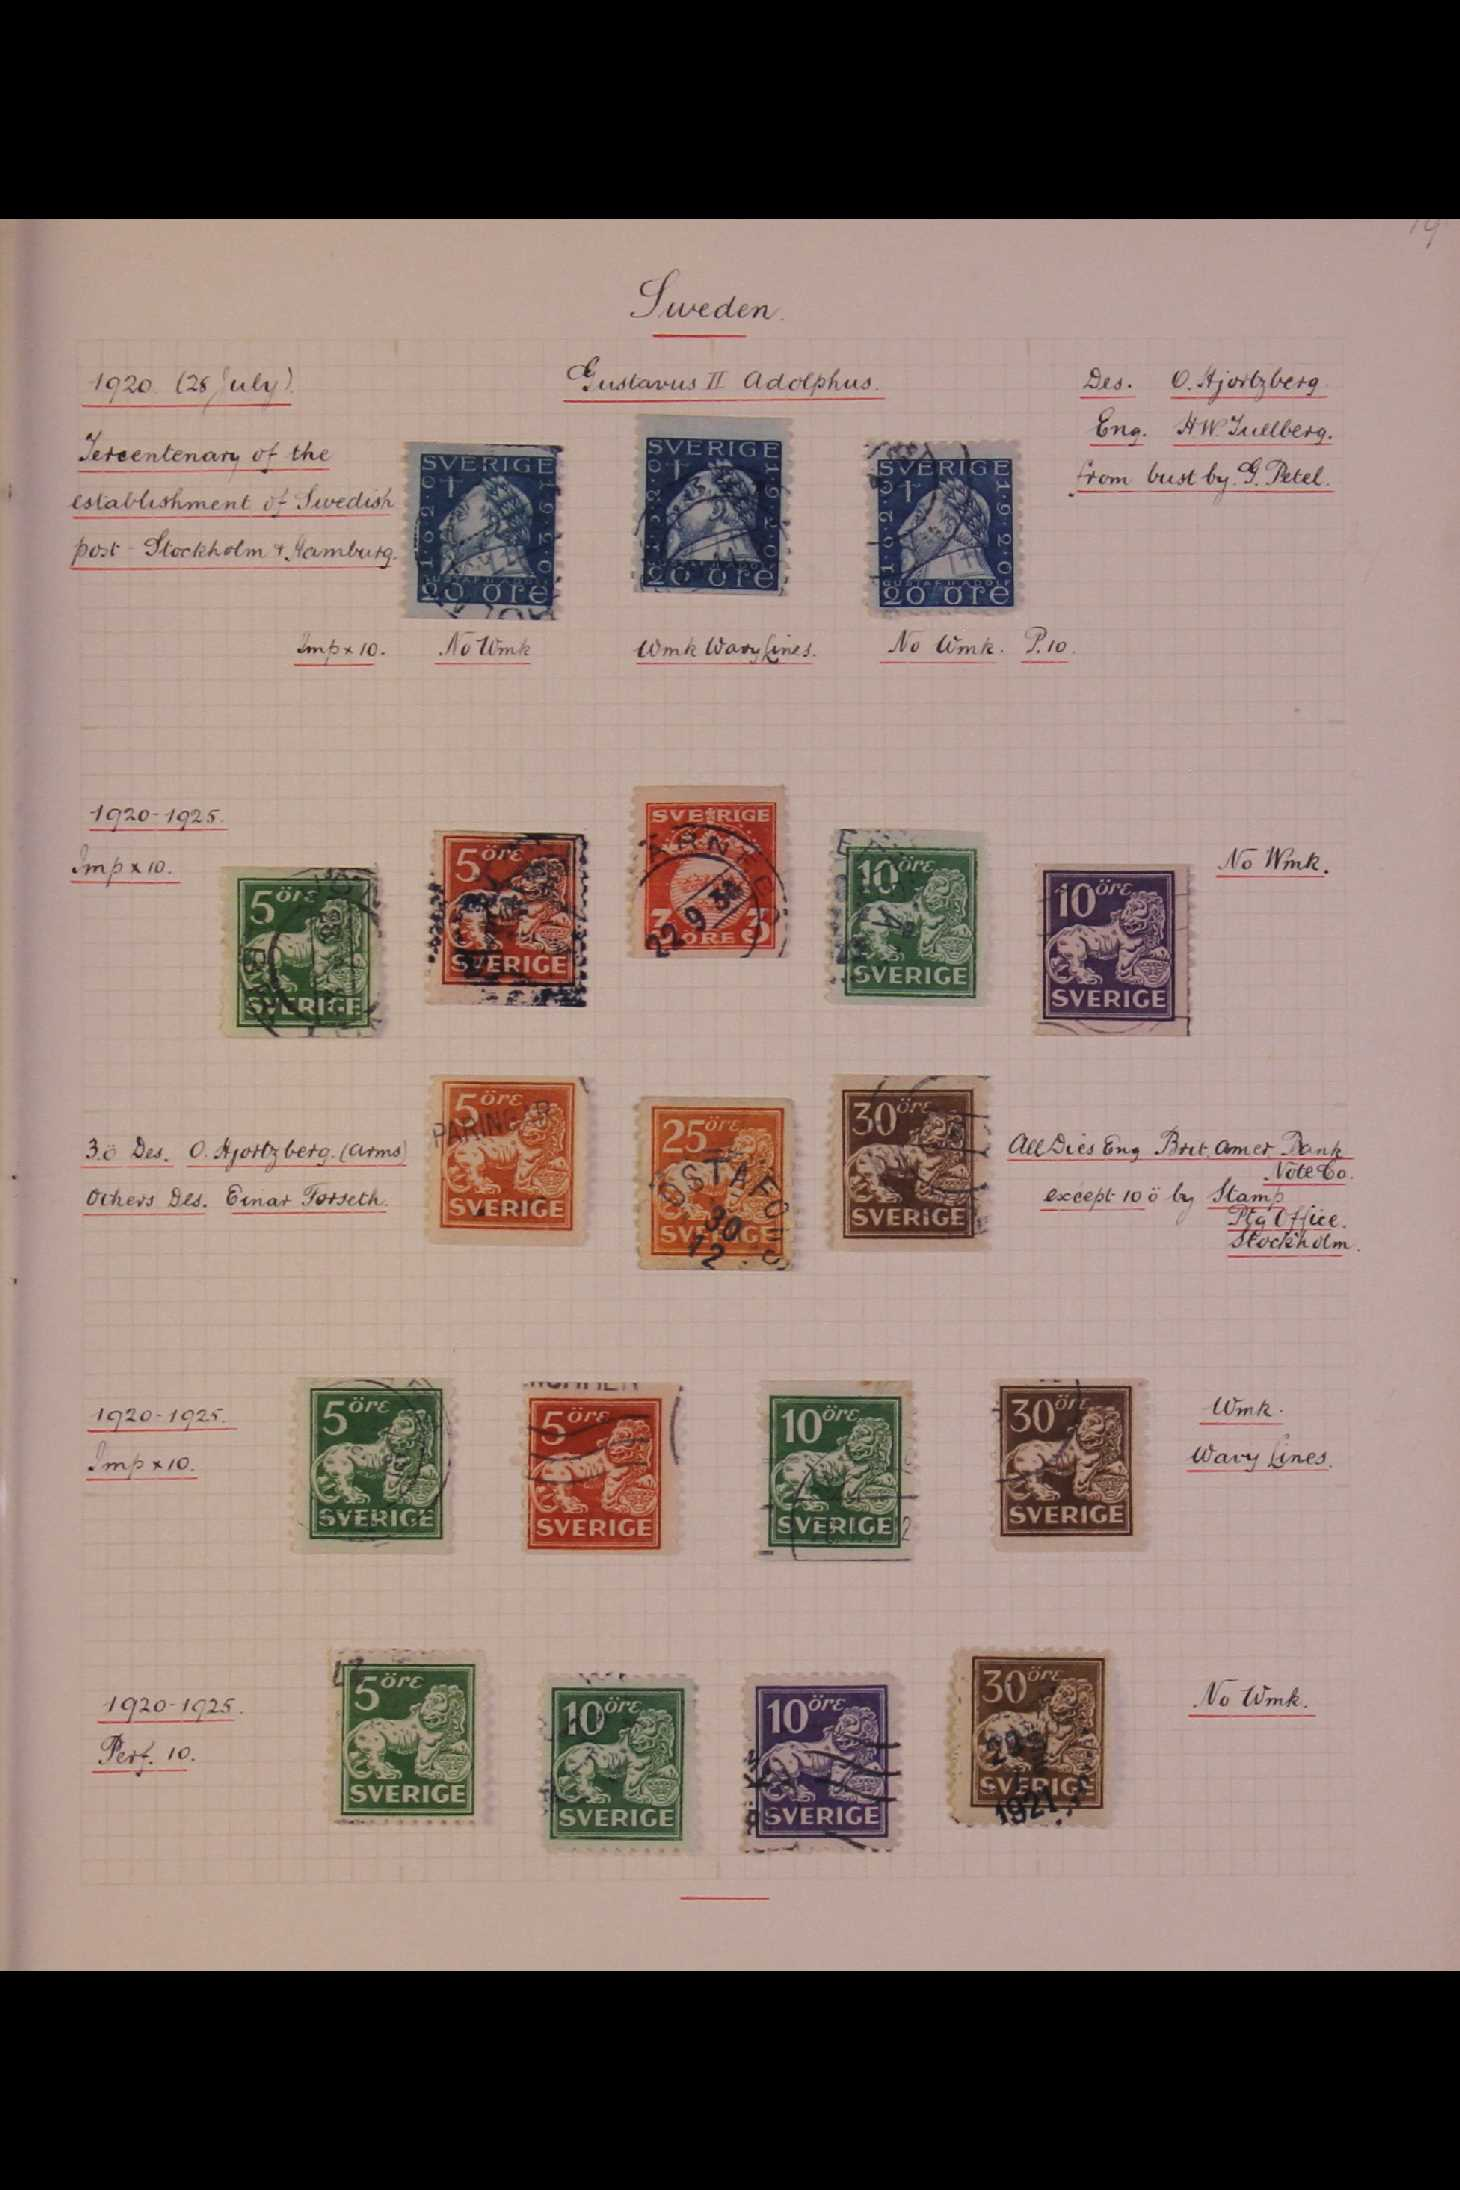 SWEDEN 1903-1966 USED COLLECTION incl. 1903 5k GPO, 1910-19 wmk Crown set, 1916 Landstorm surcharges - Image 5 of 12